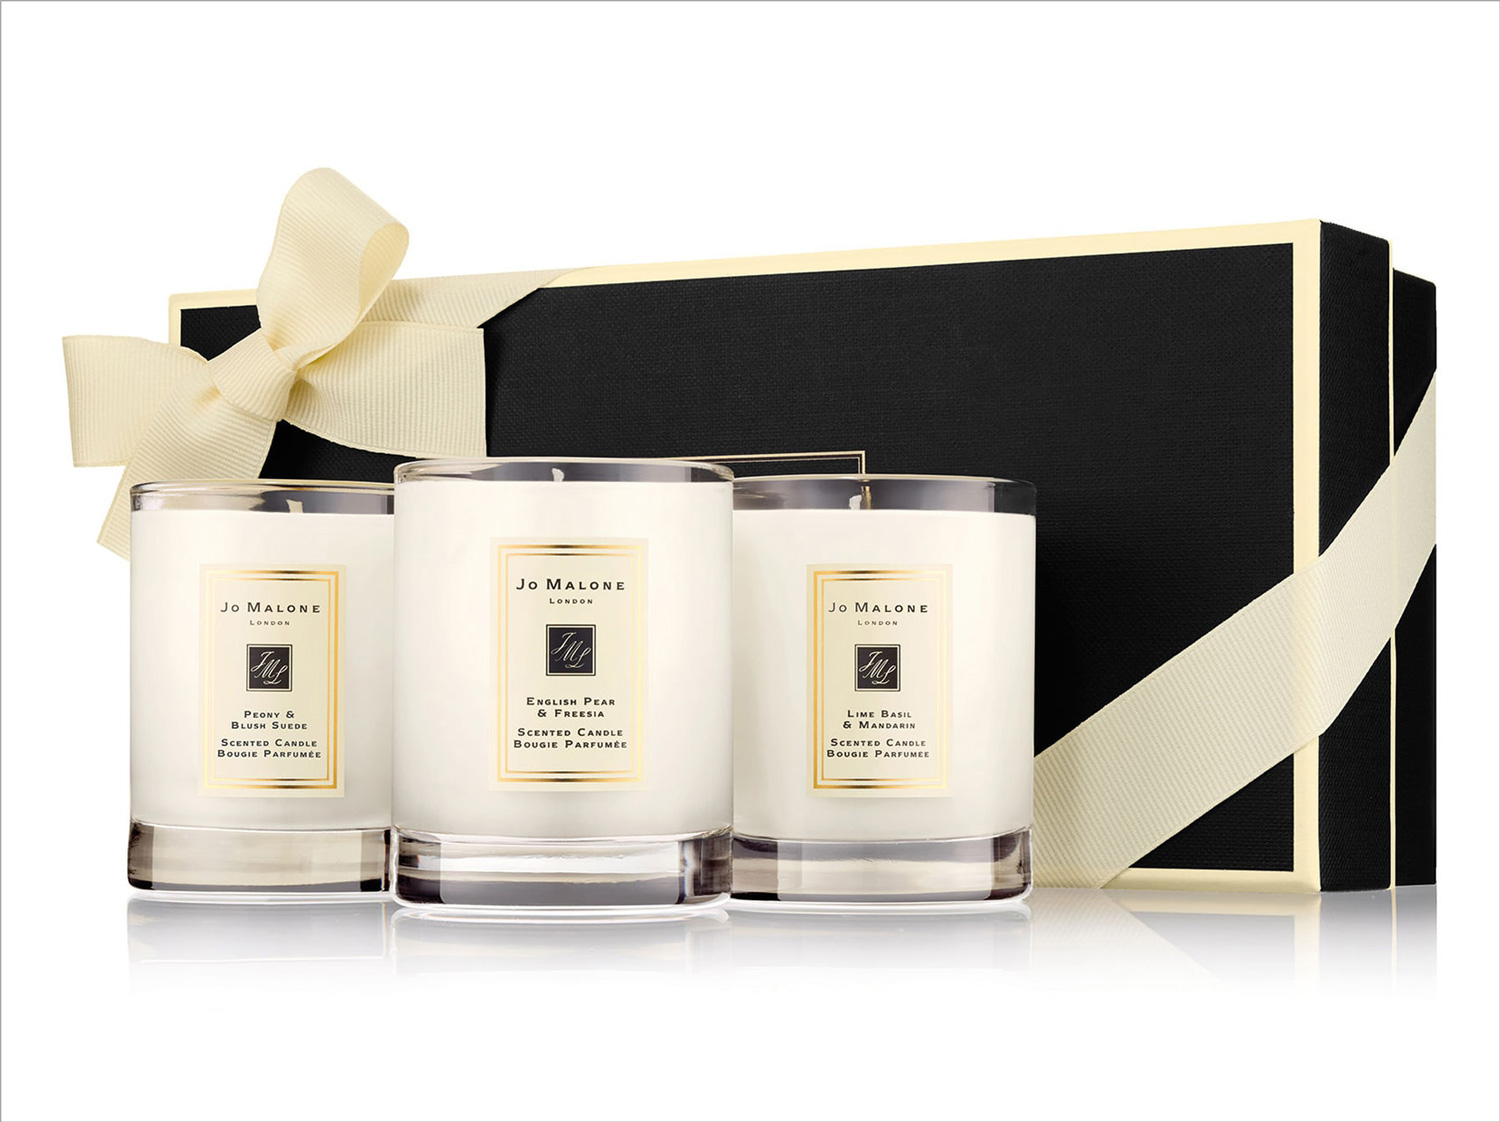 nordstrom anniversary sale travel candle collection jo malone london